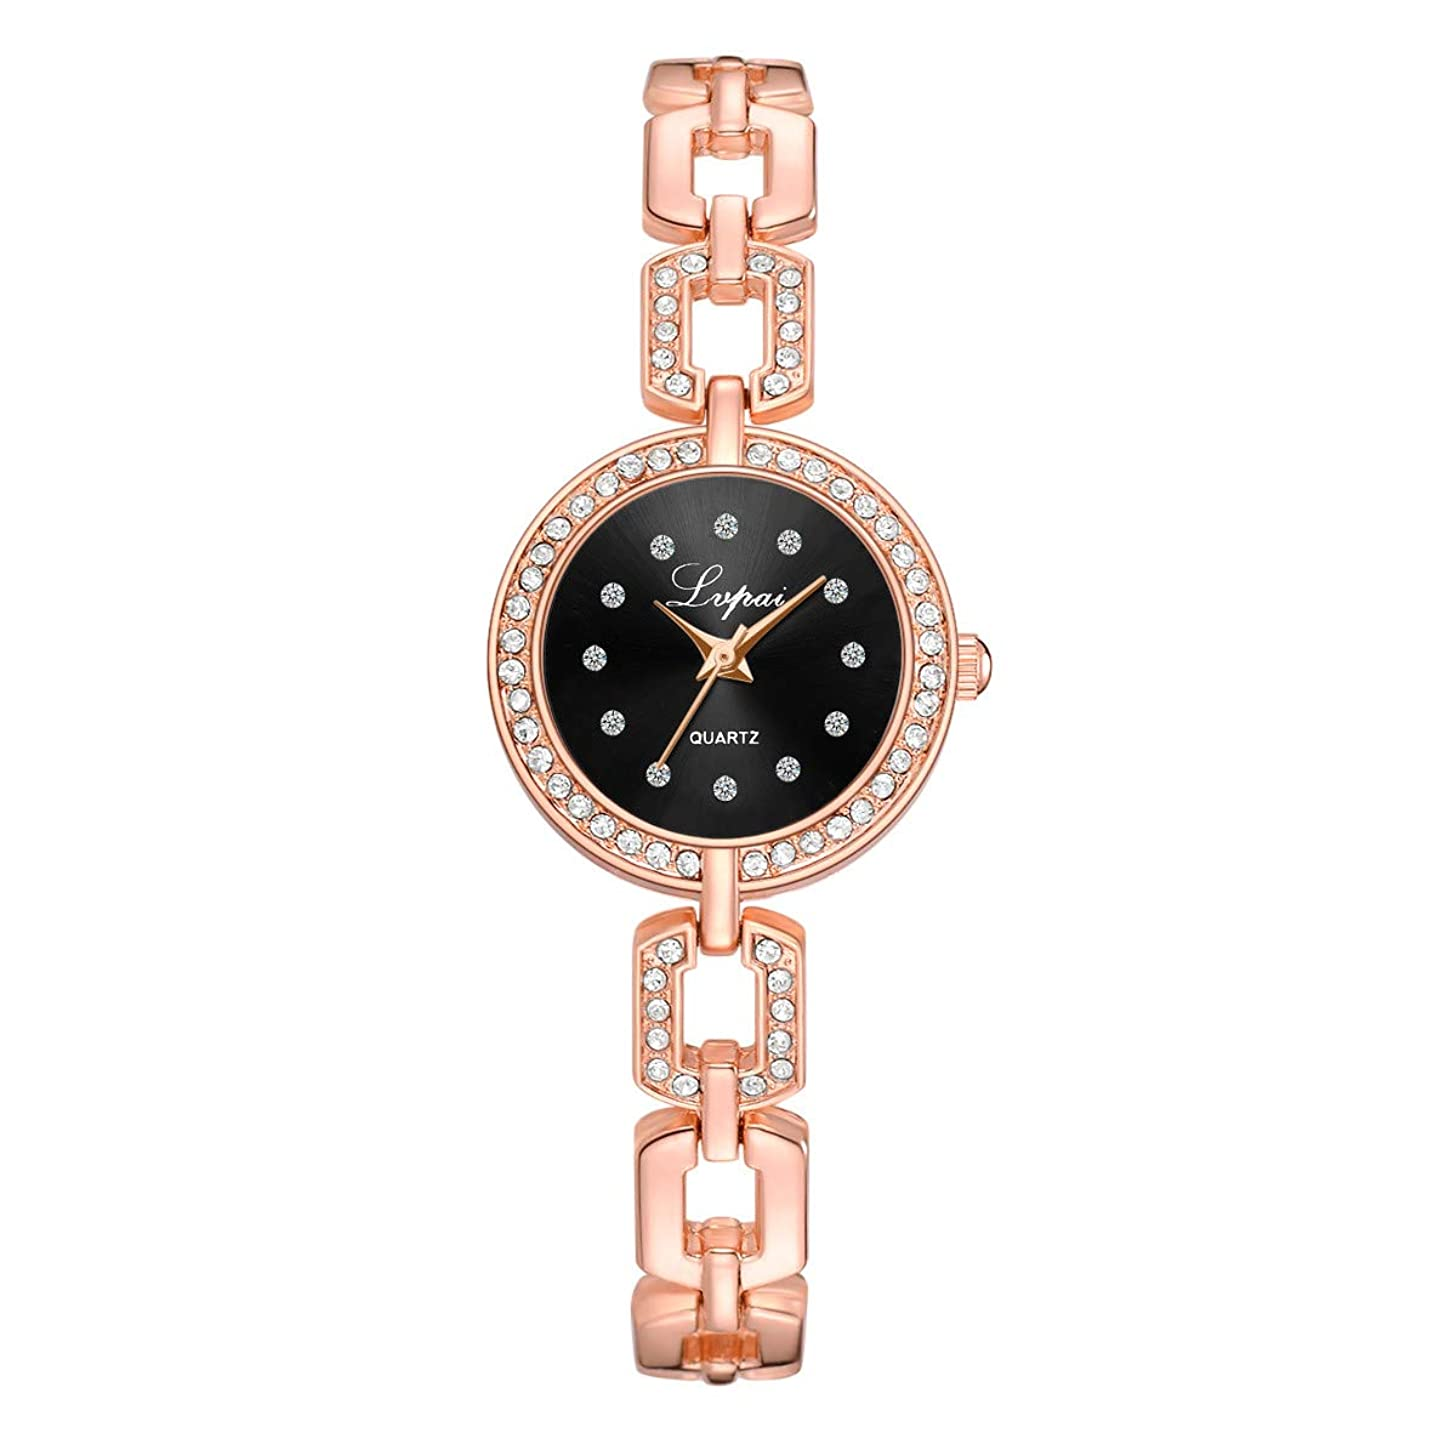 LUCAMORE Women's Quartz Wrist Watch with Simple Dial Style and Crystal Stainless Steel Bracelet Watches